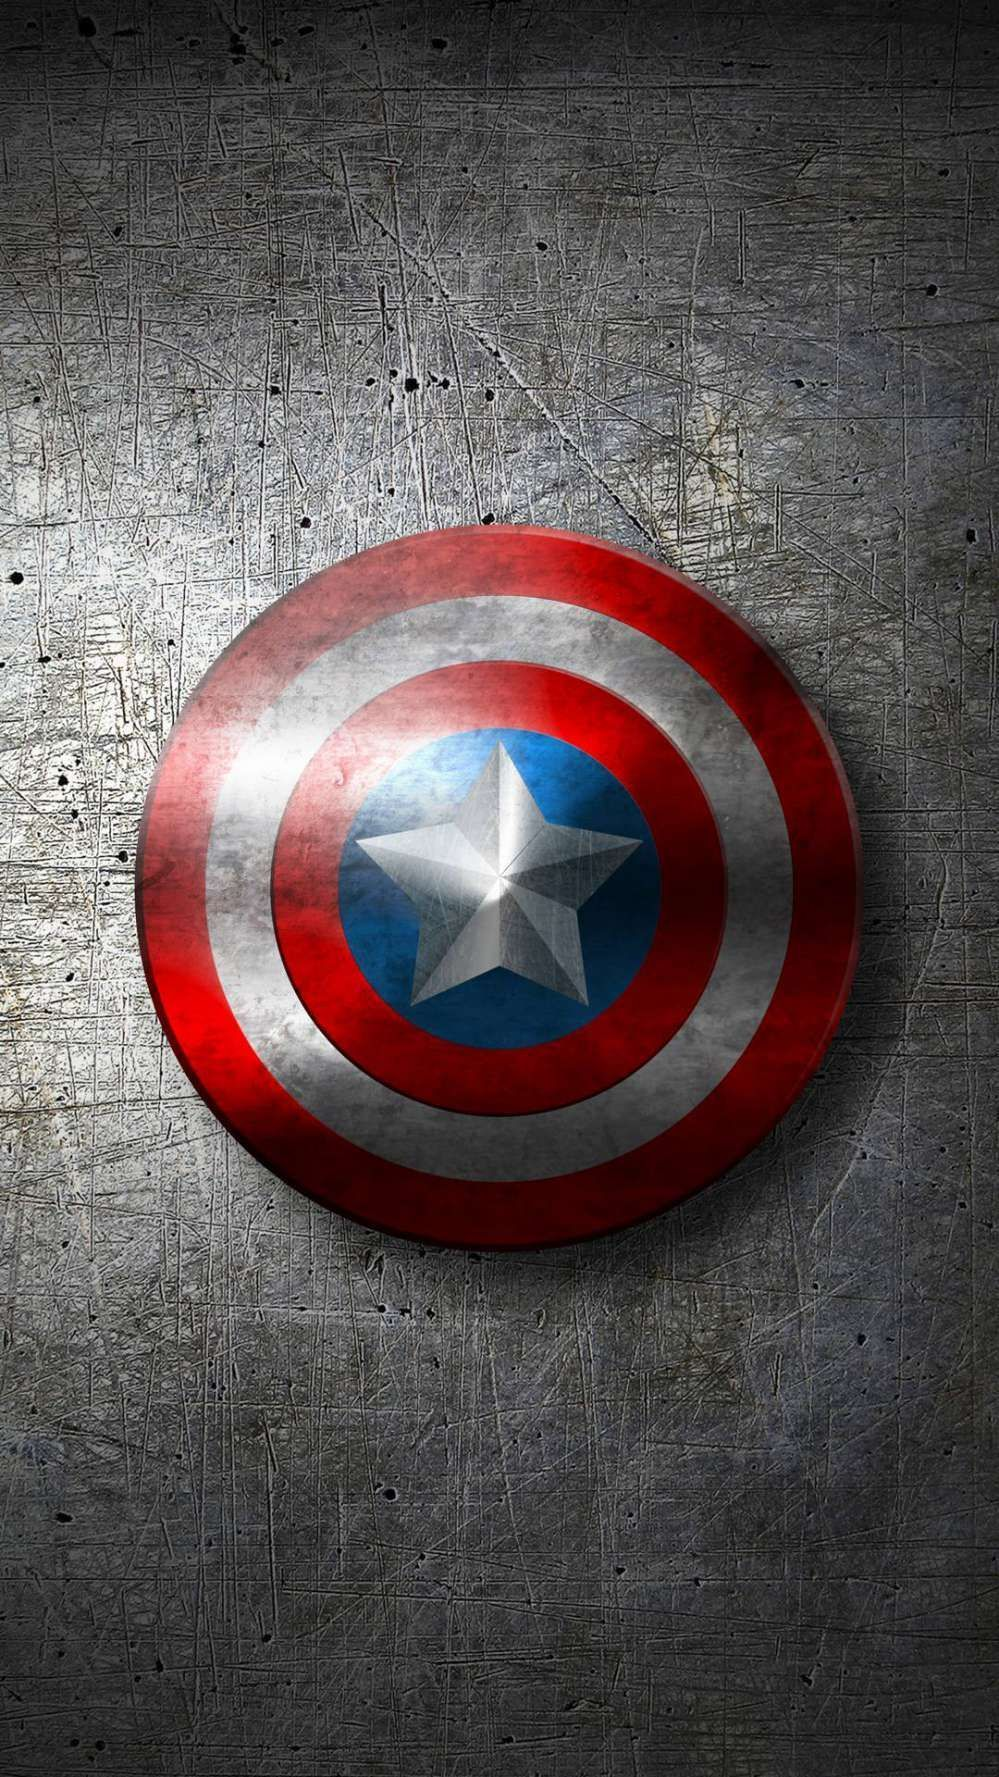 Captain America Shield Iphone Wallpapers Top Free Alt Image Captain America Wallpaper Captain America Shield Wallpaper Captain America Poster Art